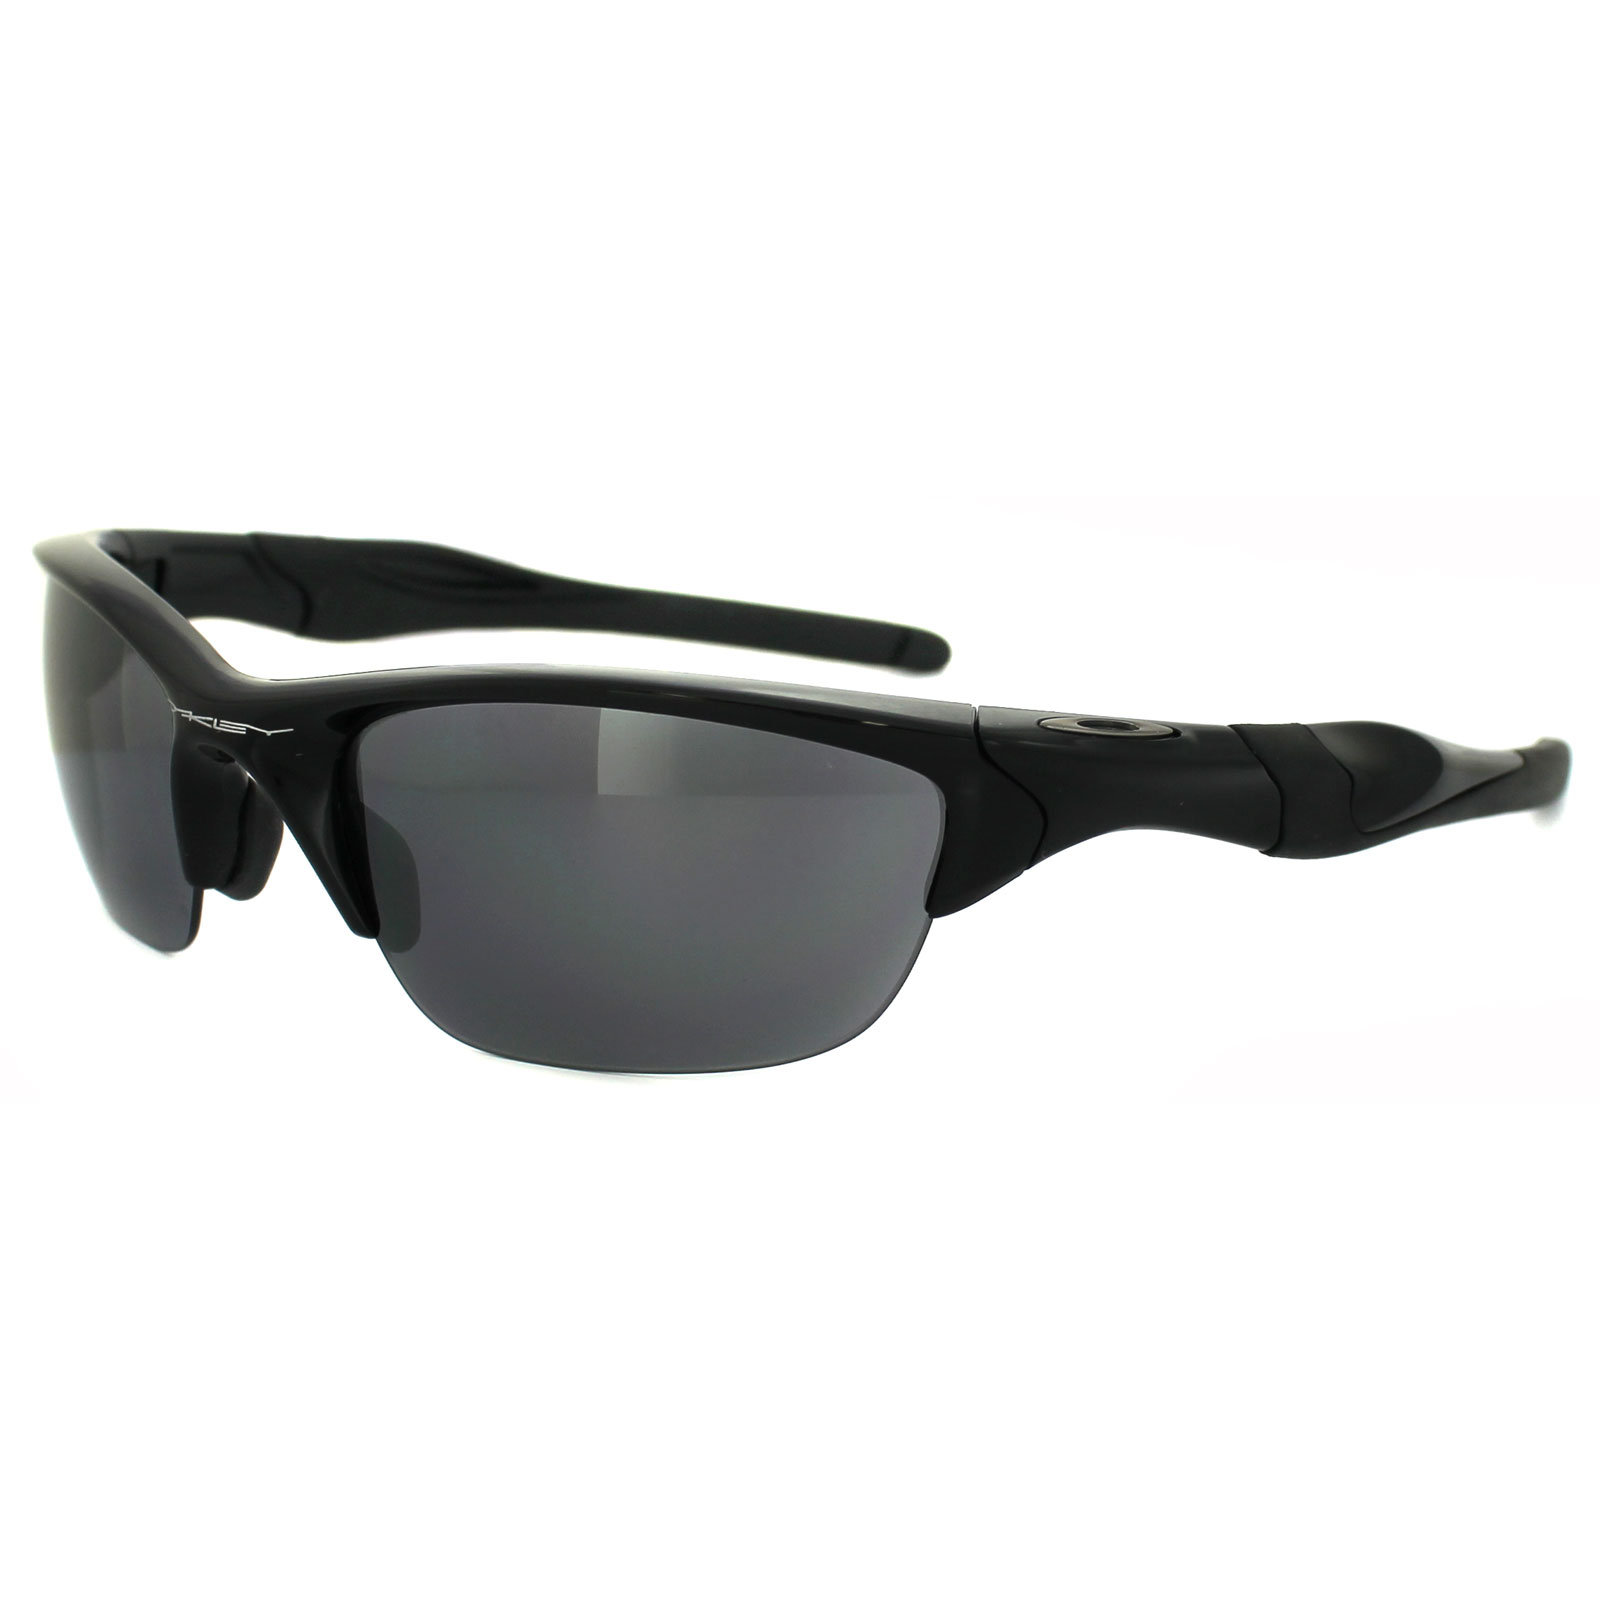 1cb39d633a0 Cheap Oakley Half Jacket 2.0 Sunglasses - Discounted Sunglasses